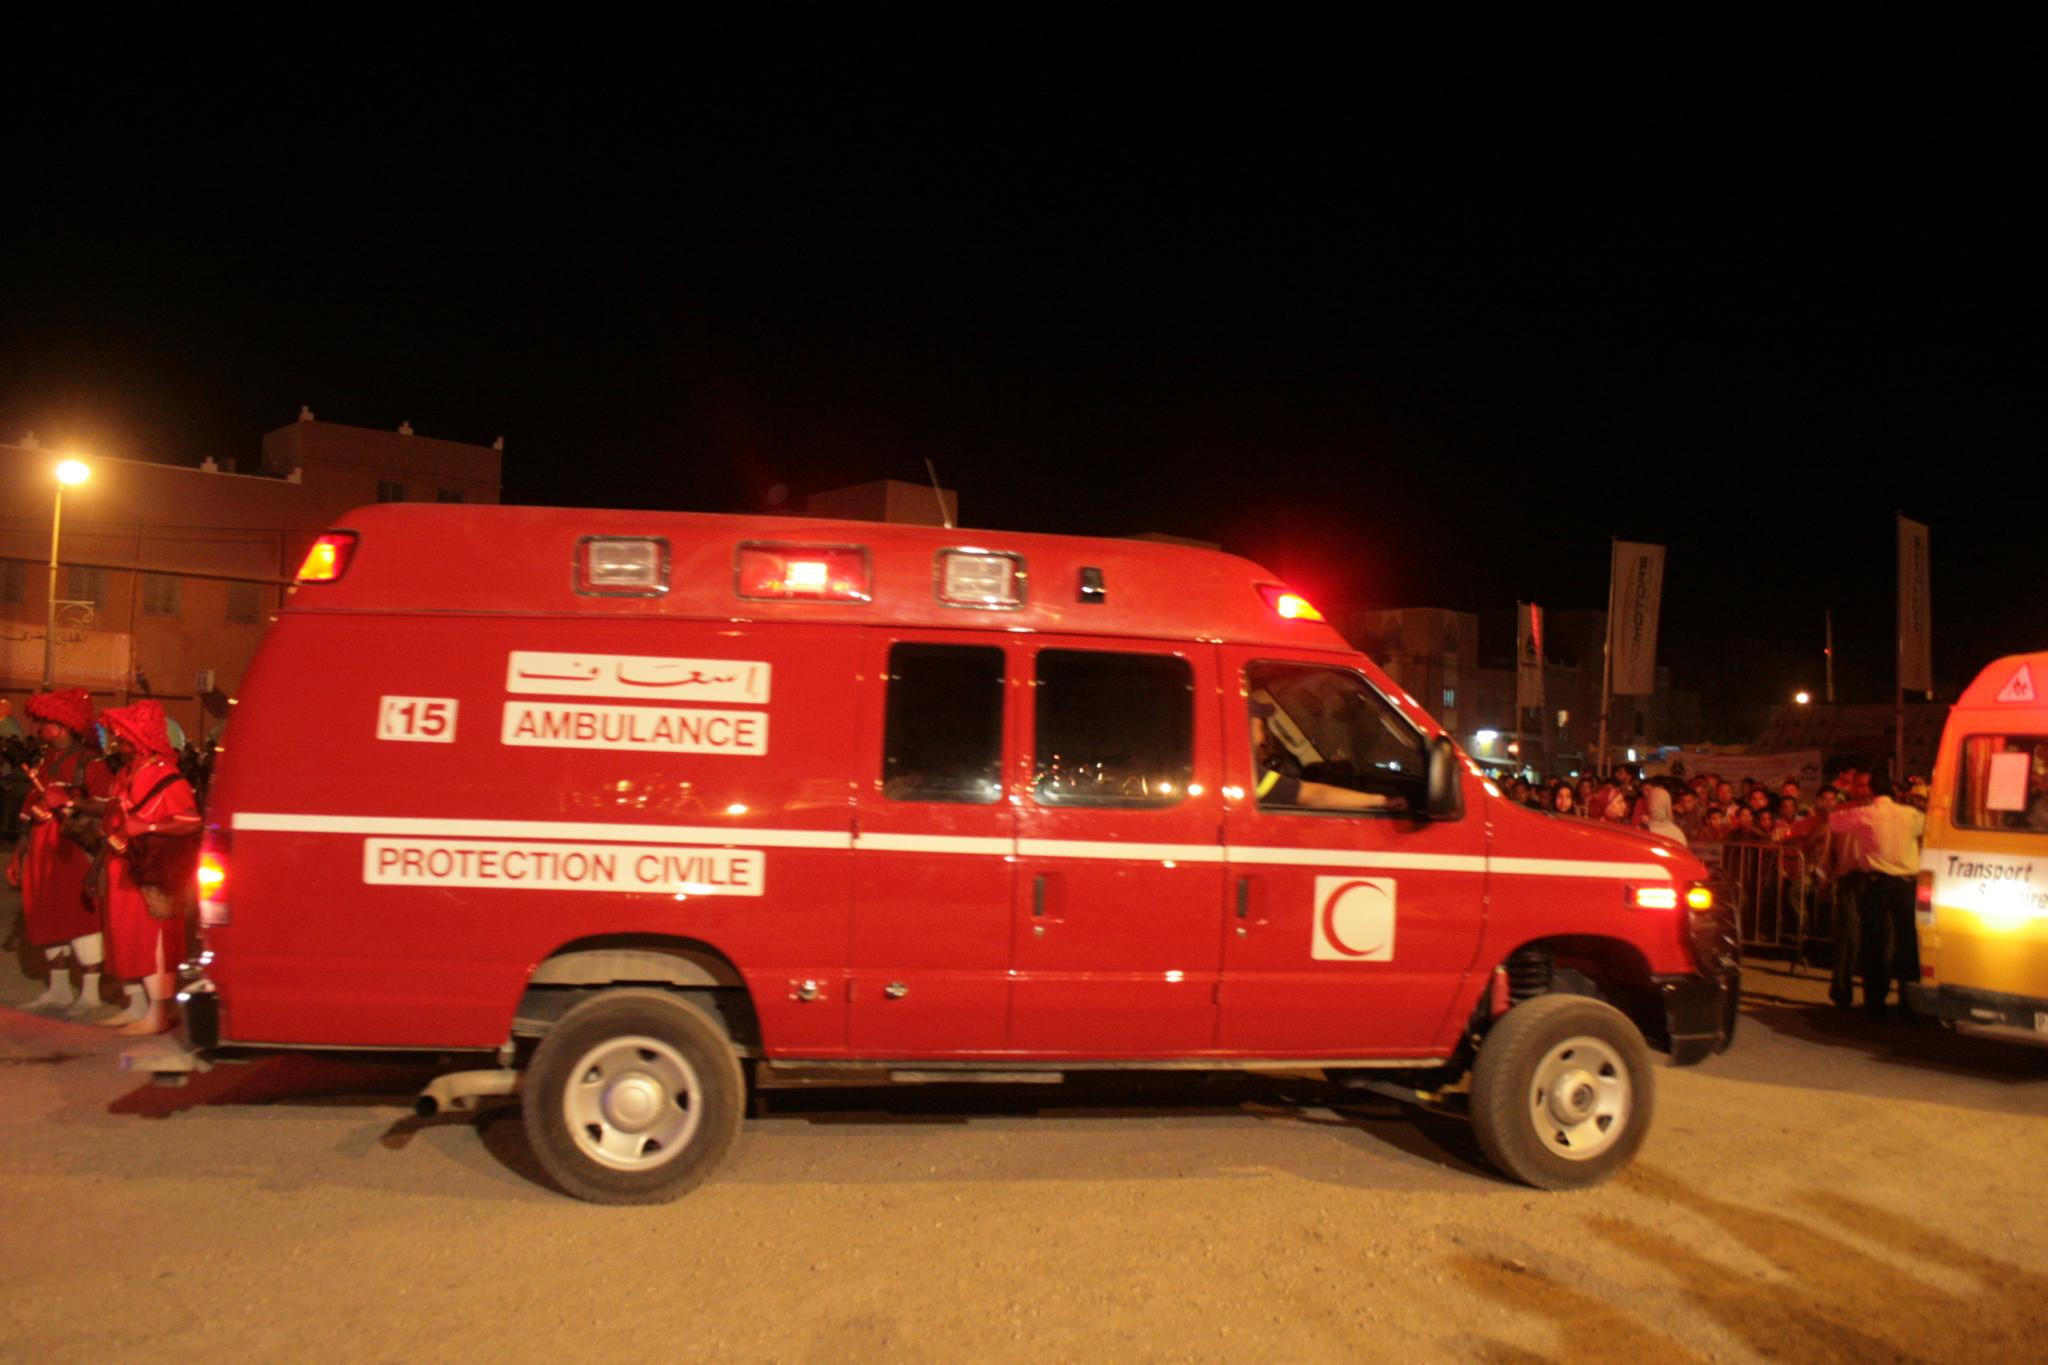 Photos - Protection civile - Page 32 8361785010_81fe1b3b61_o